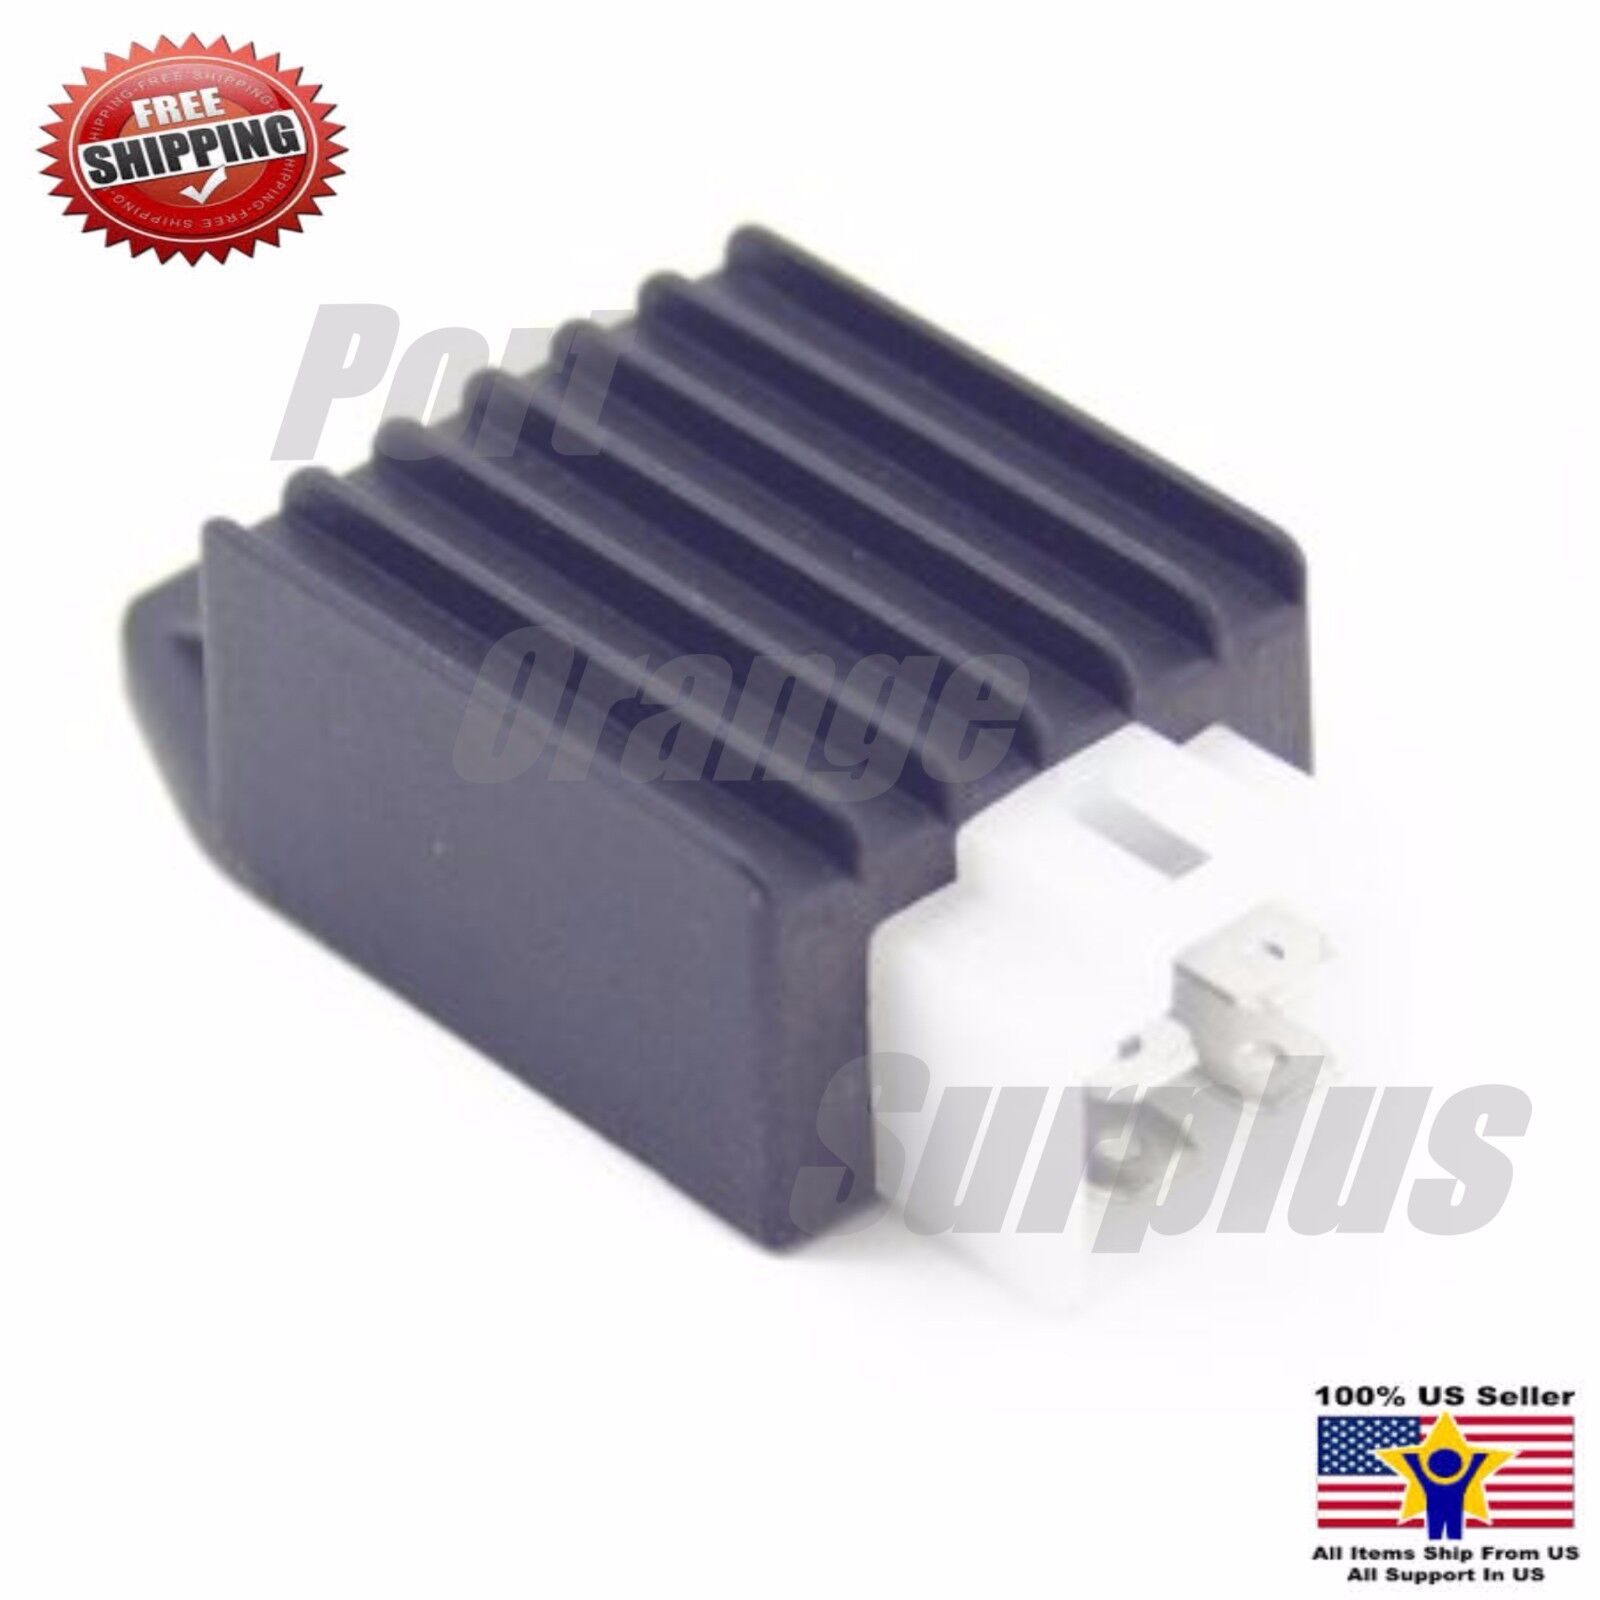 hight resolution of details about new voltage regulator rectifier tomberlin crossfire 150 150r 150cc go kart cart